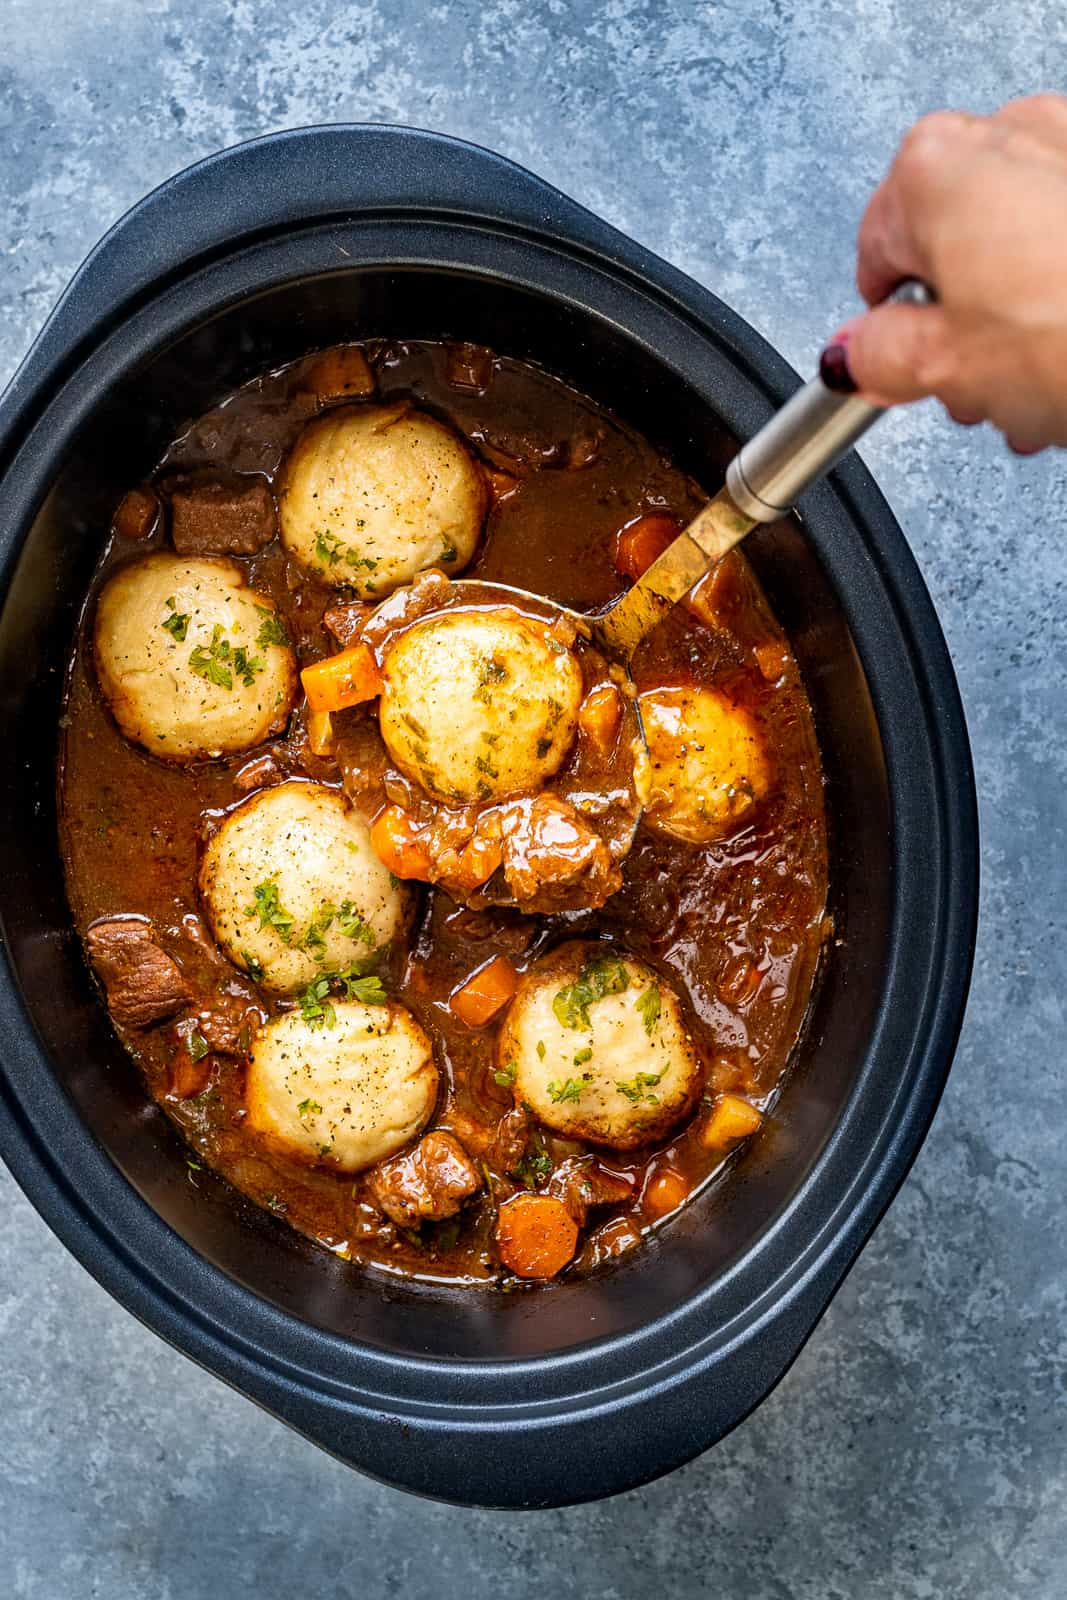 Beef stew with dumplings pictured in a slow cooker